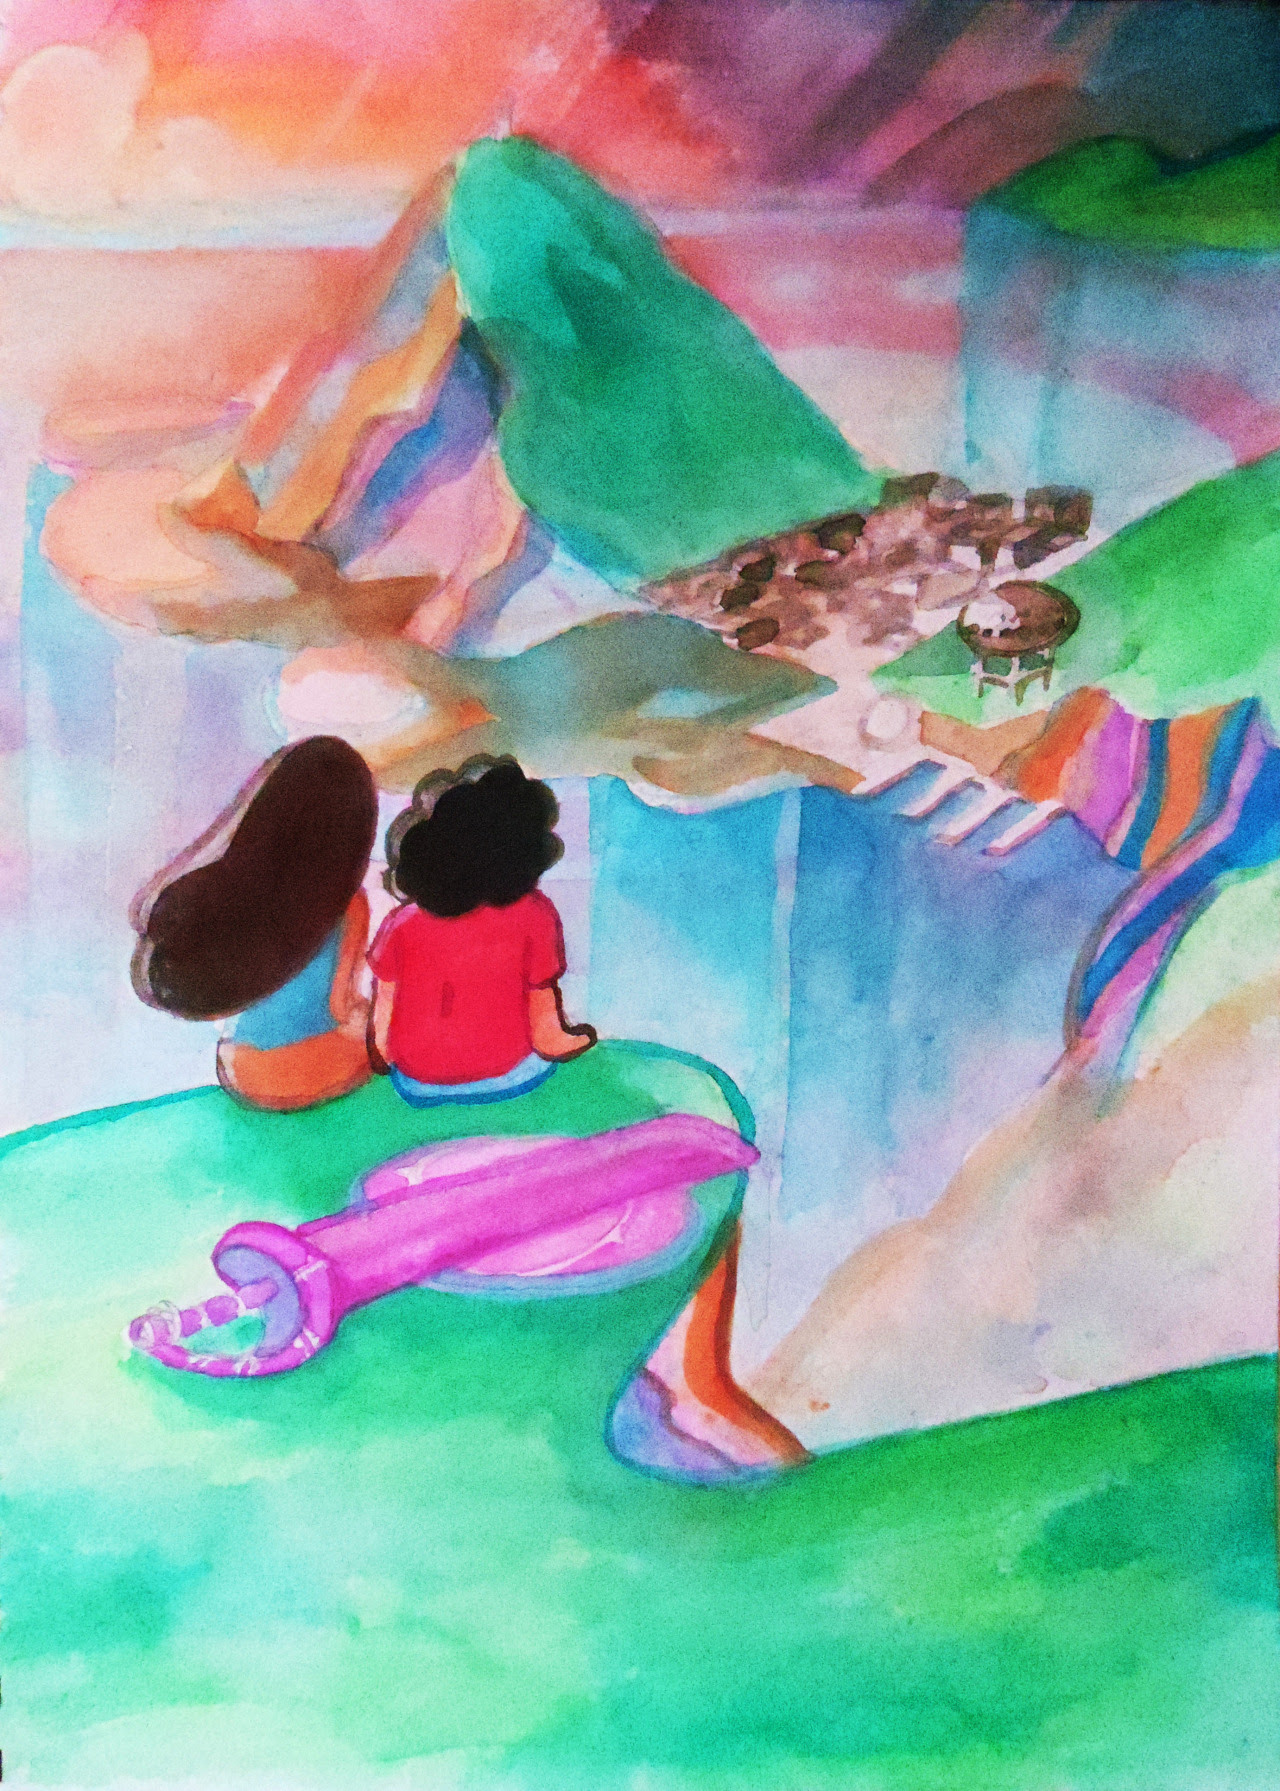 OVERLOOK 8.31.16 Watercolor on paper Commission for Tamasha (and her students!)